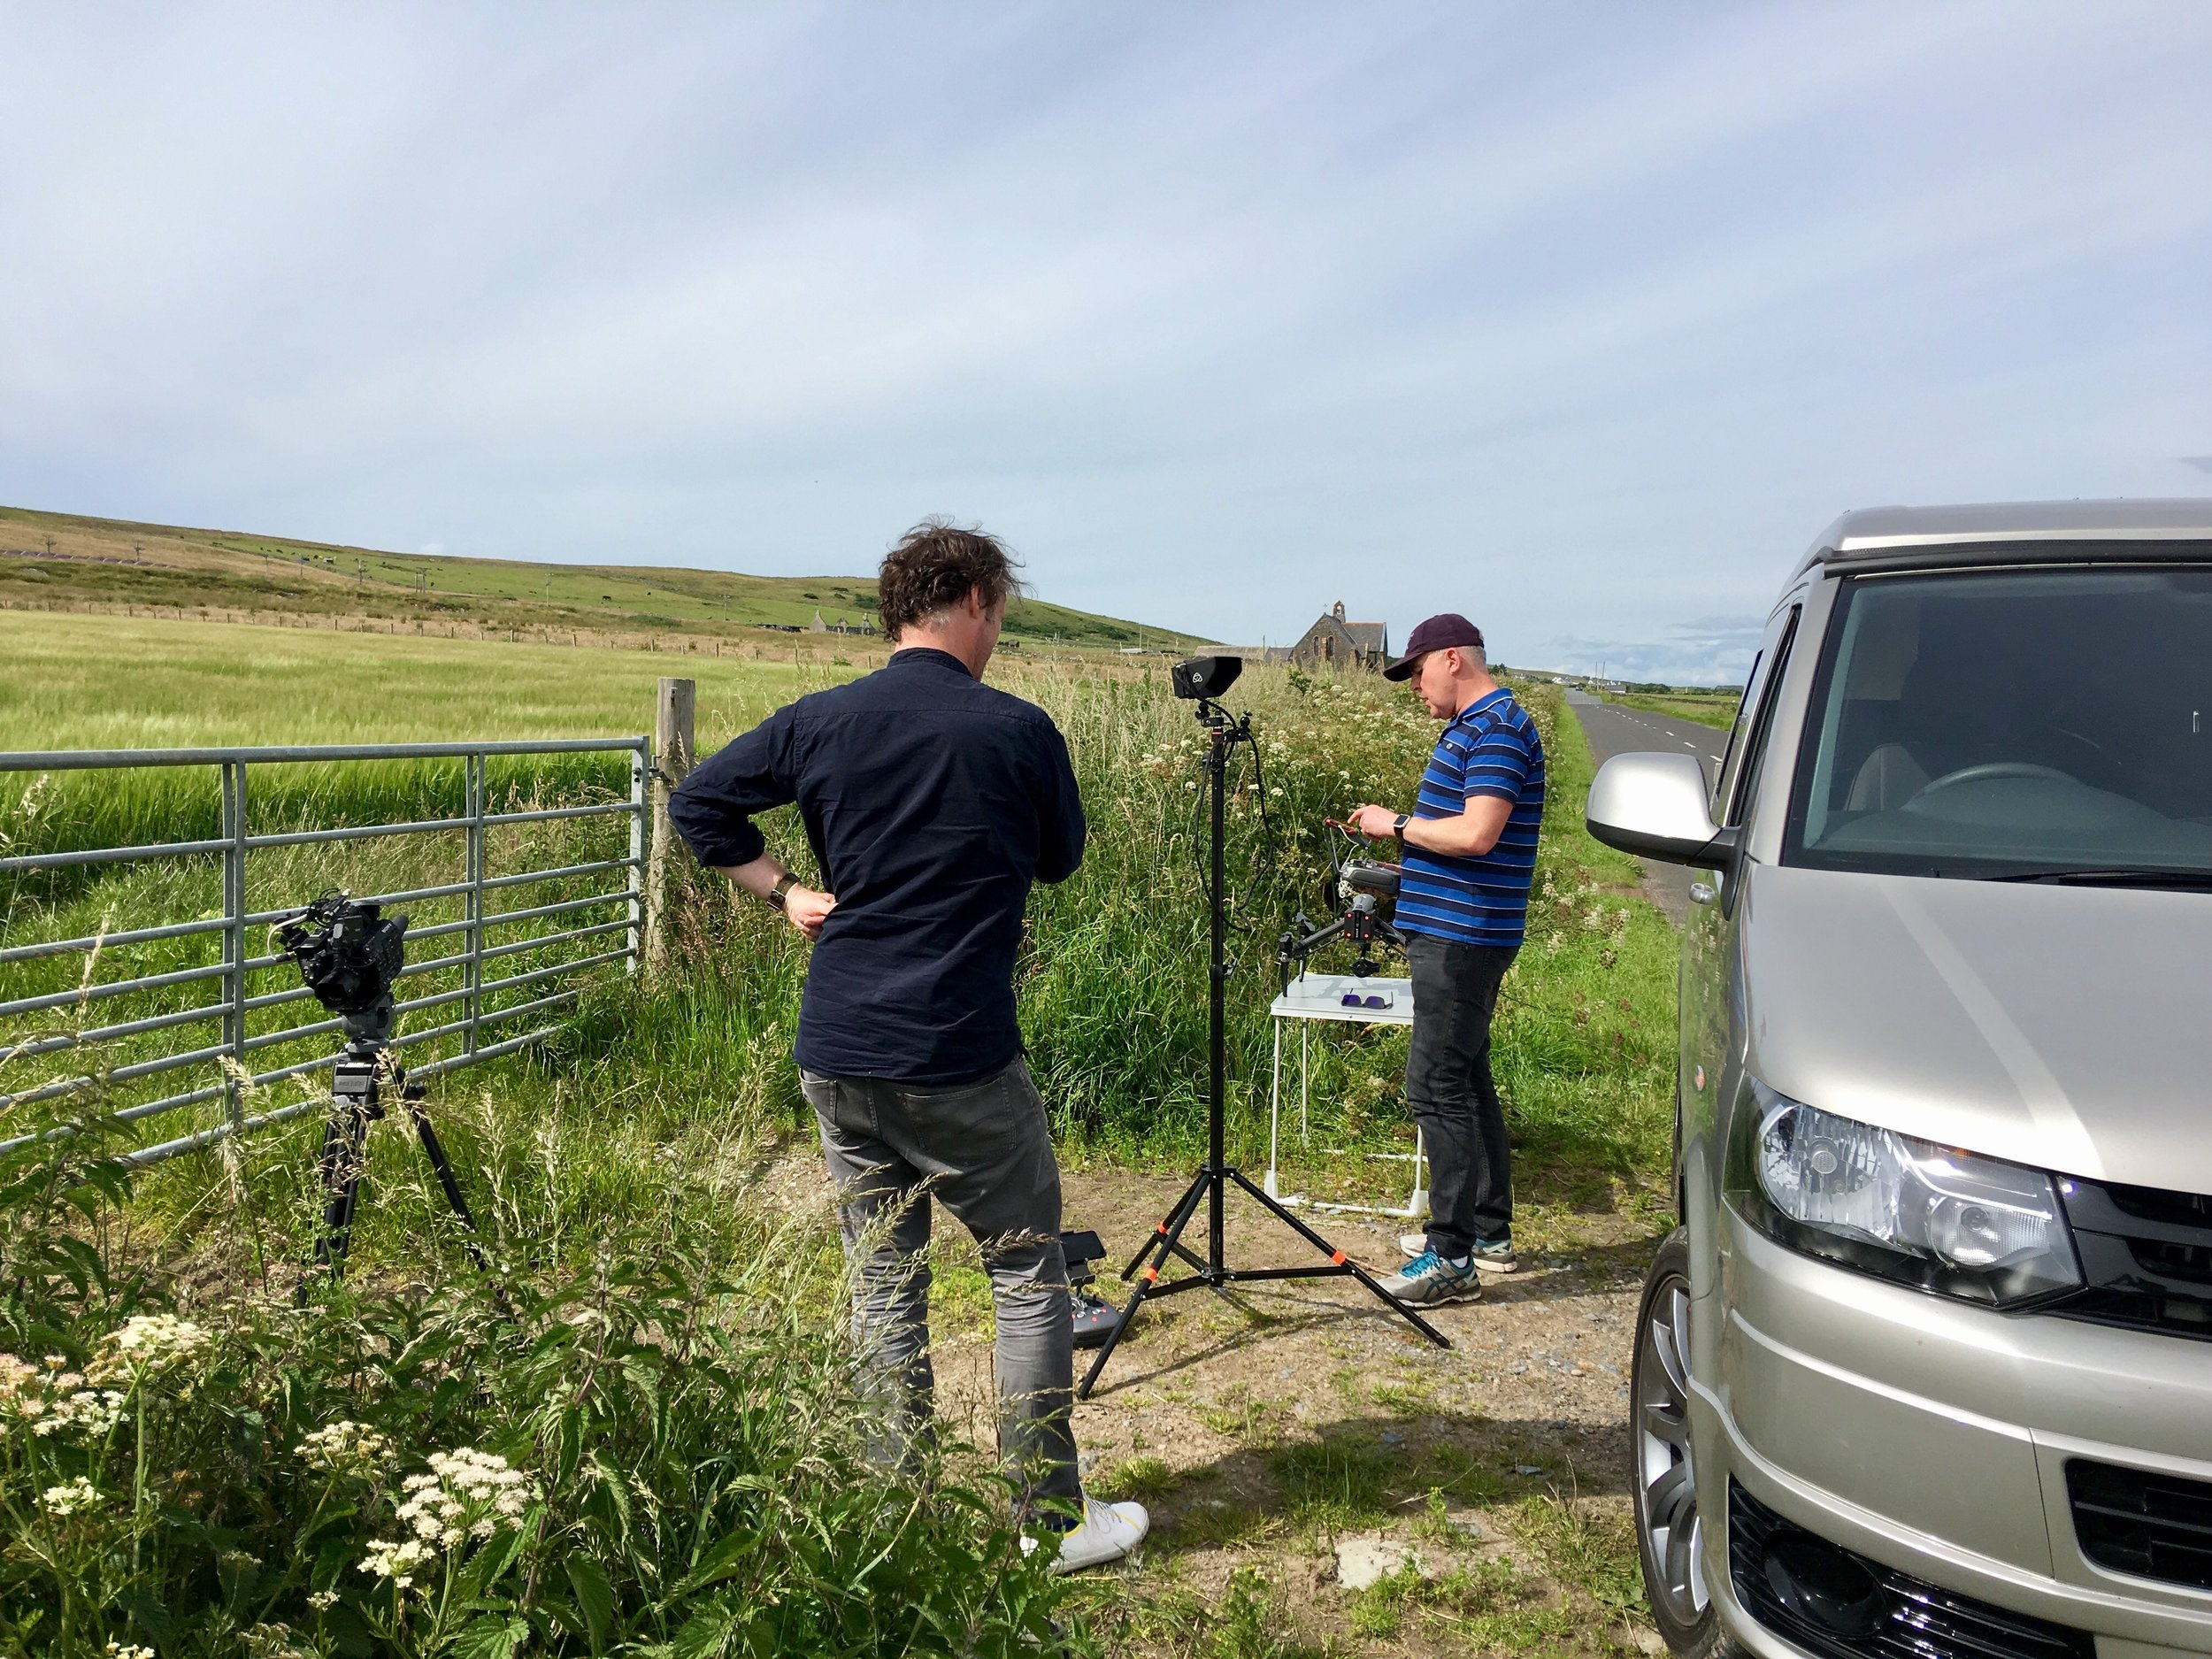 On Islay working for MakerTV - June 2017